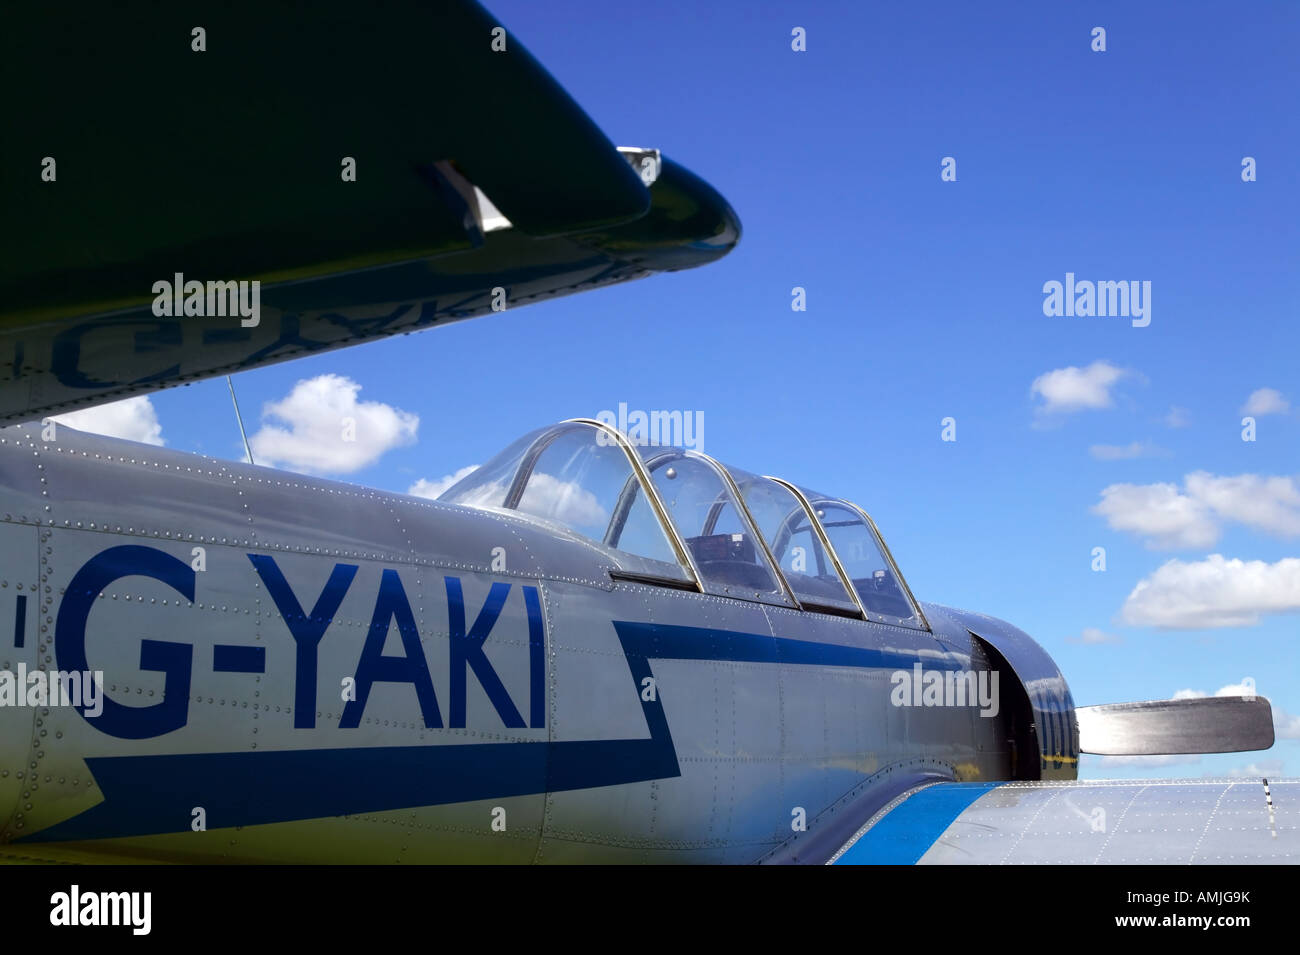 View along the fuselage of a Russian YAK52 airplane these aircraft are now used for stunt flying - Stock Image